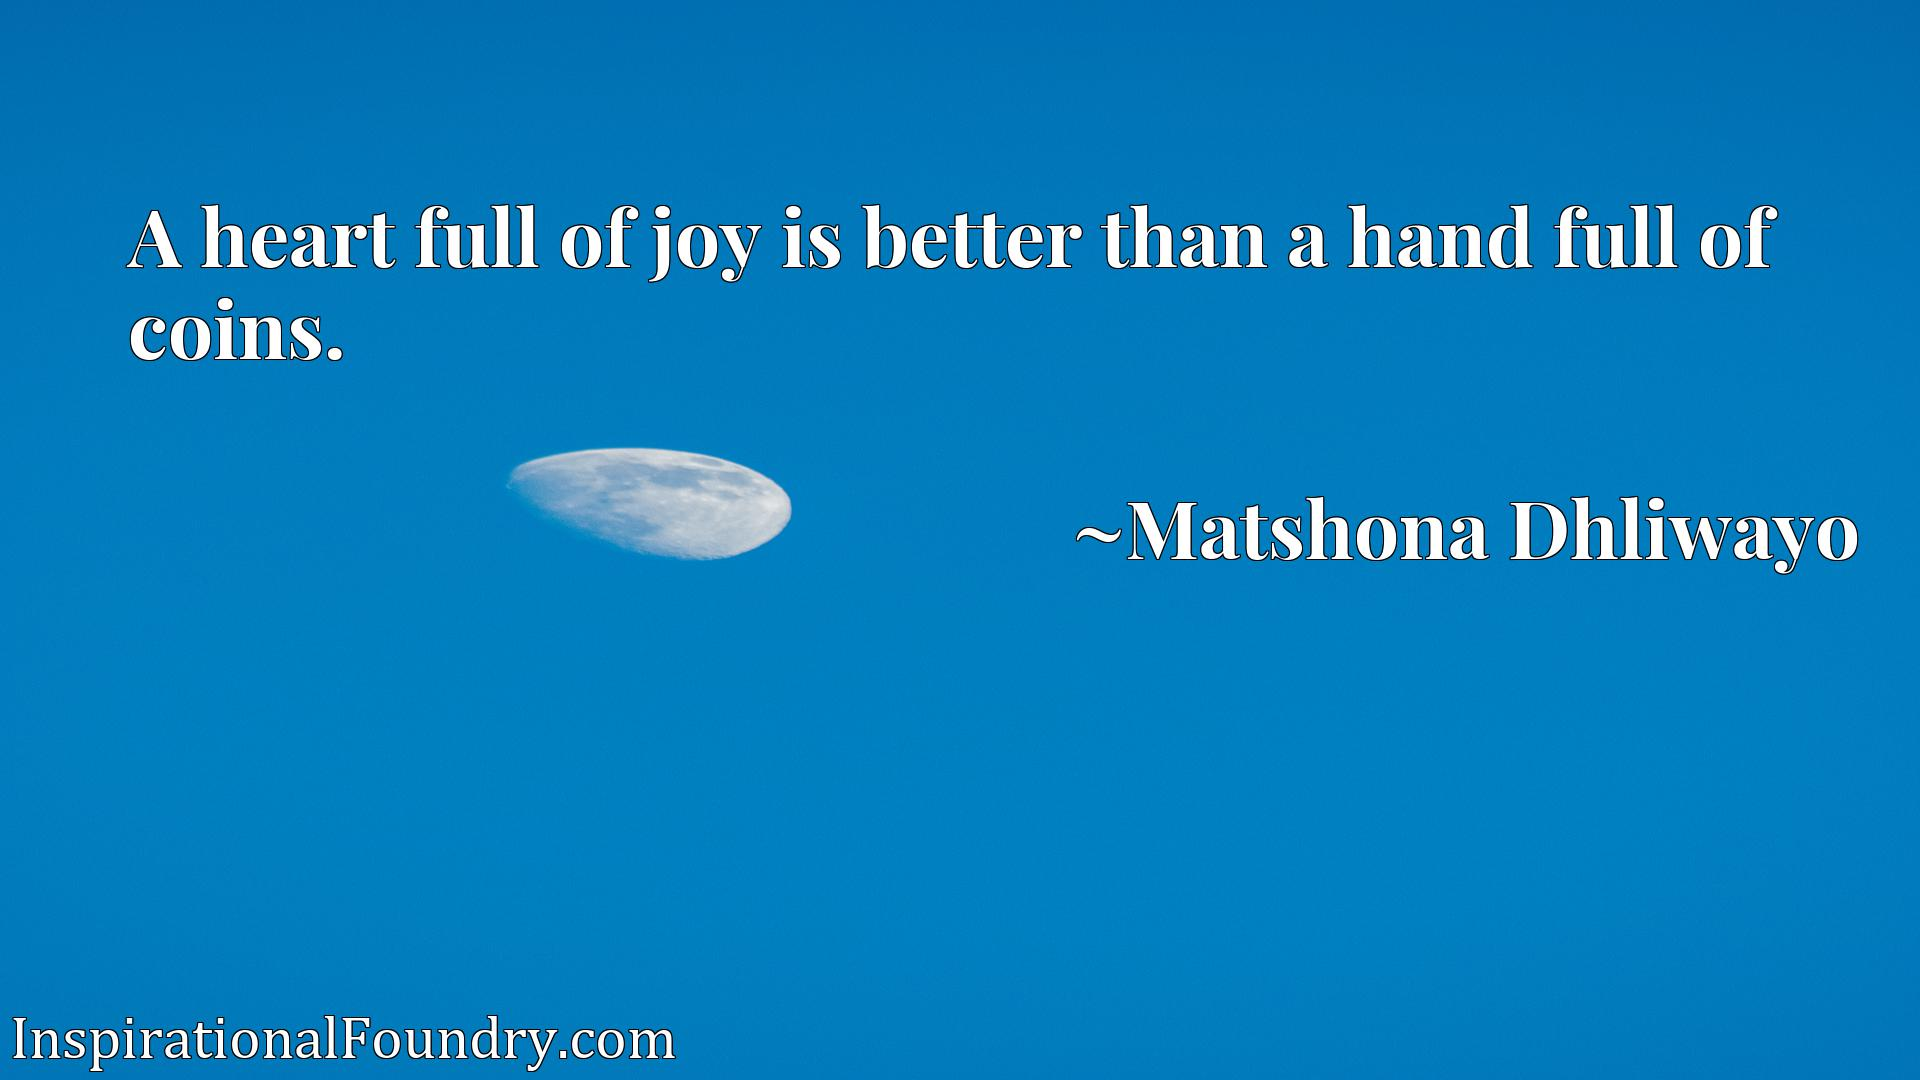 A heart full of joy is better than a hand full of coins.